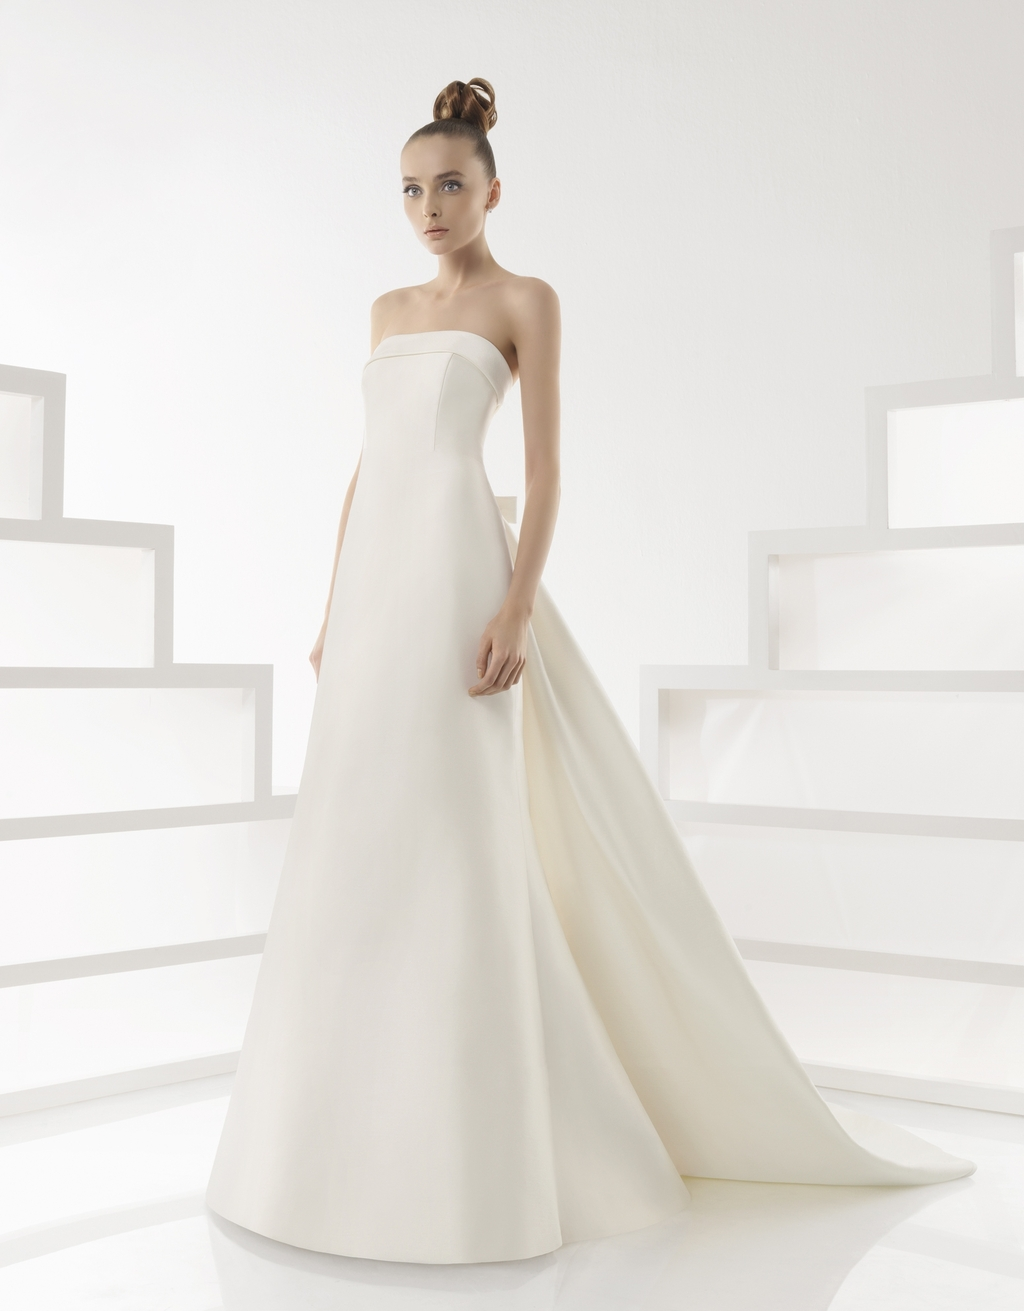 216-eilene-2011-rosa-clara-wedding-dress-classic-ivory-strapless-modified-a-line.full